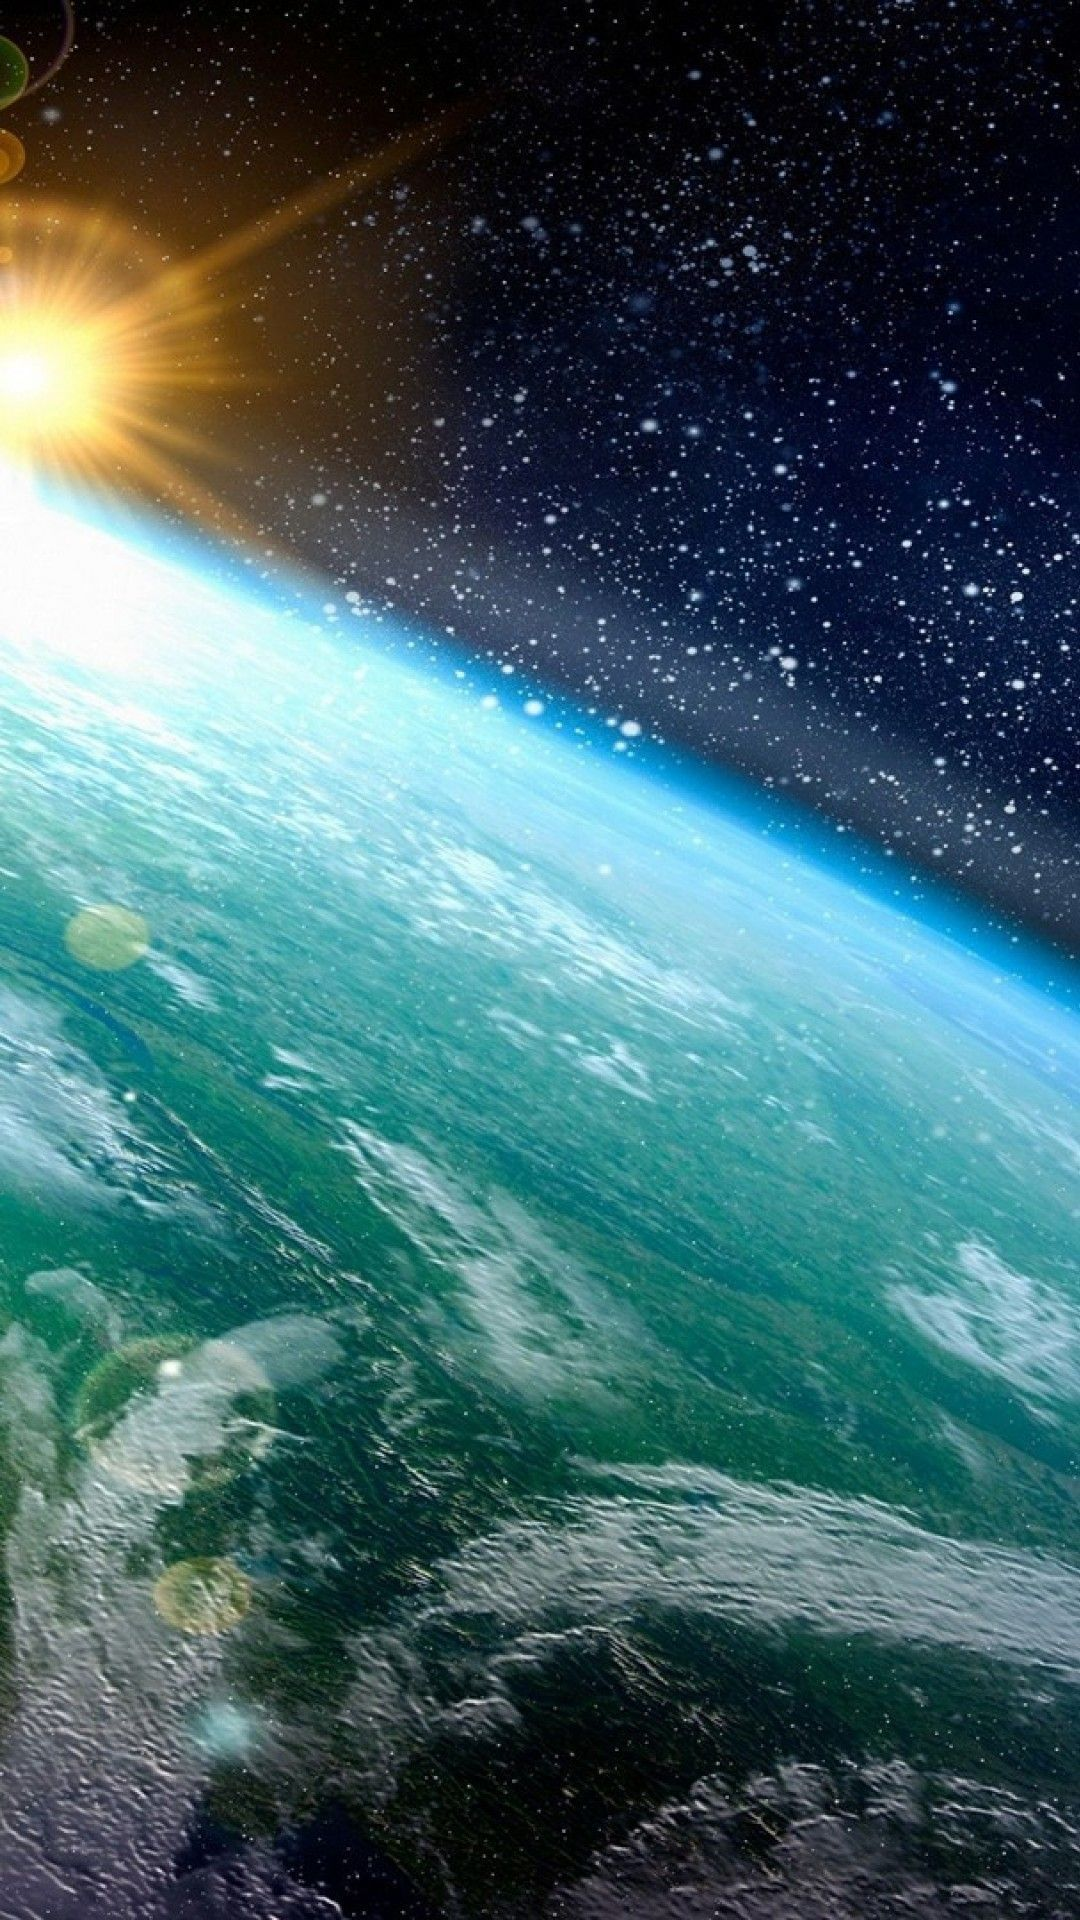 Earth Iphone Wallpapers 4k Download 4k Wallpaper Iphone Iphone